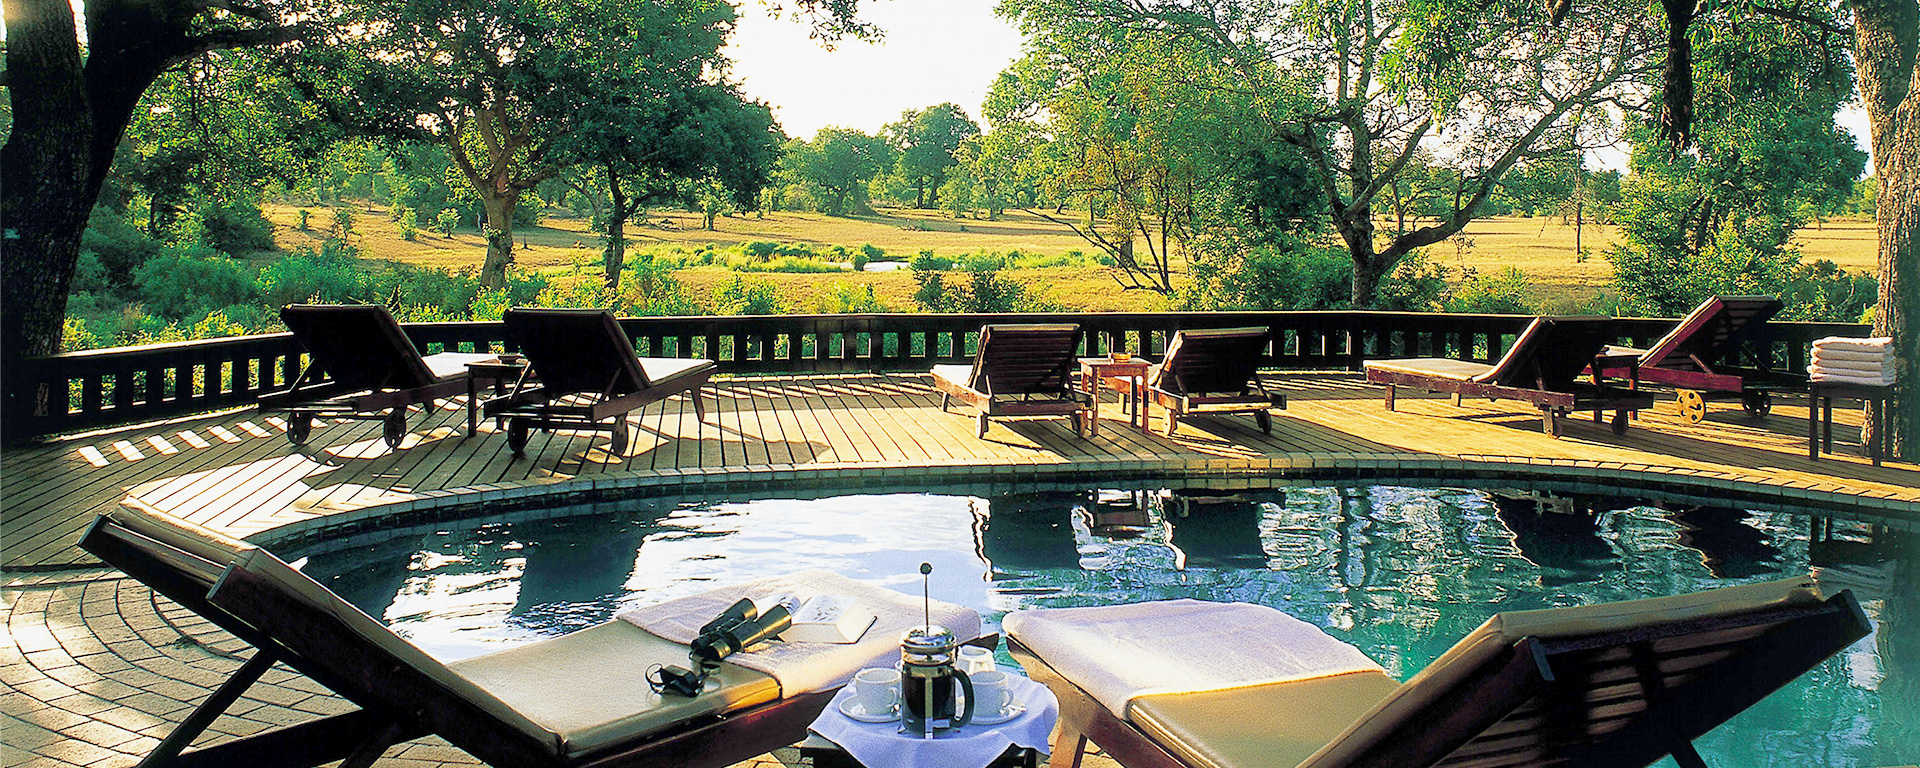 Accommodations South Africa Accommodation In South Africa South Africa Sun